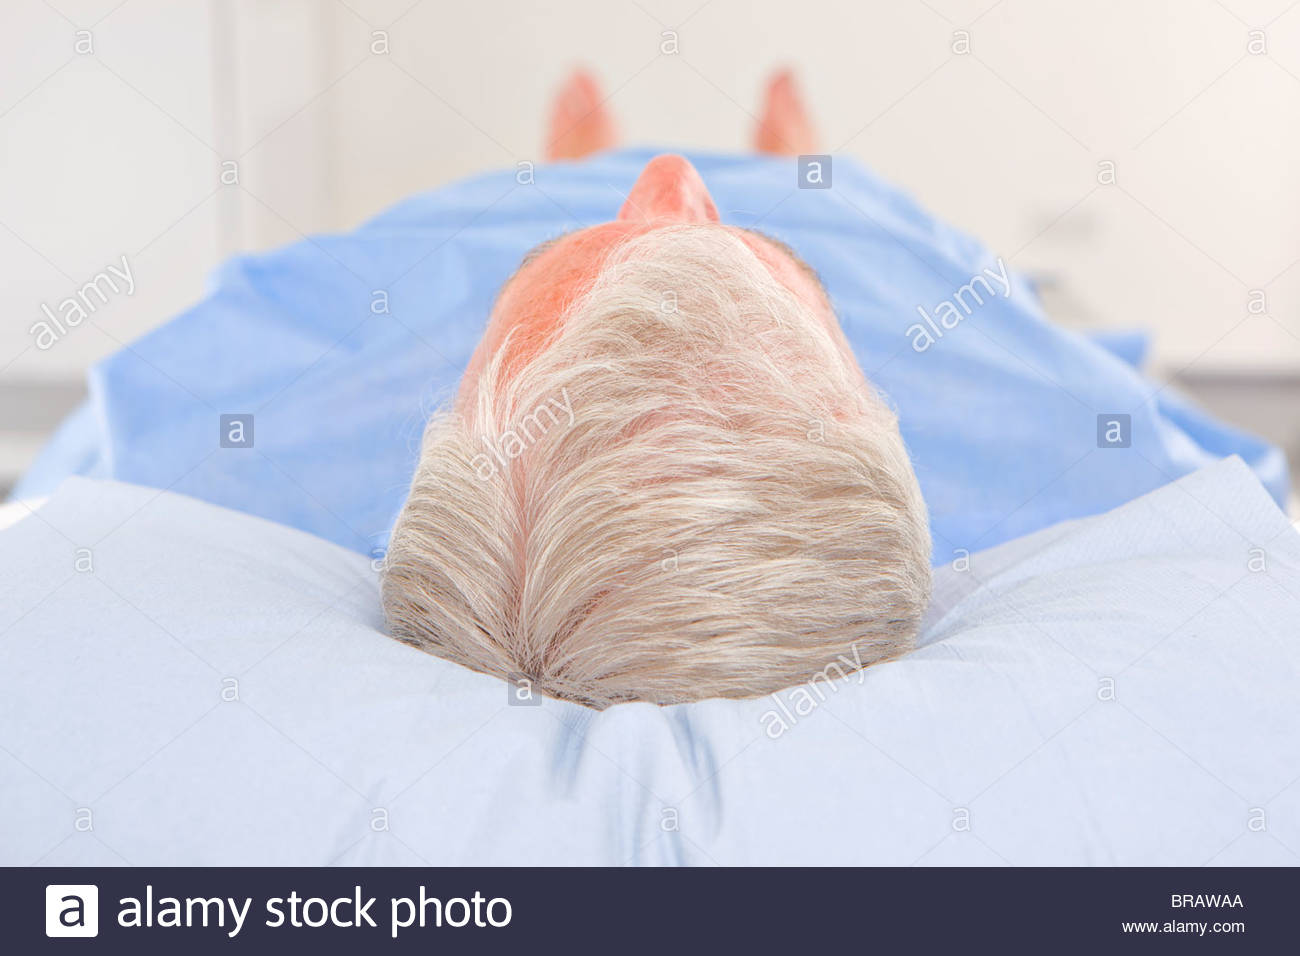 Patient laying on examination table in hospital - Stock Image